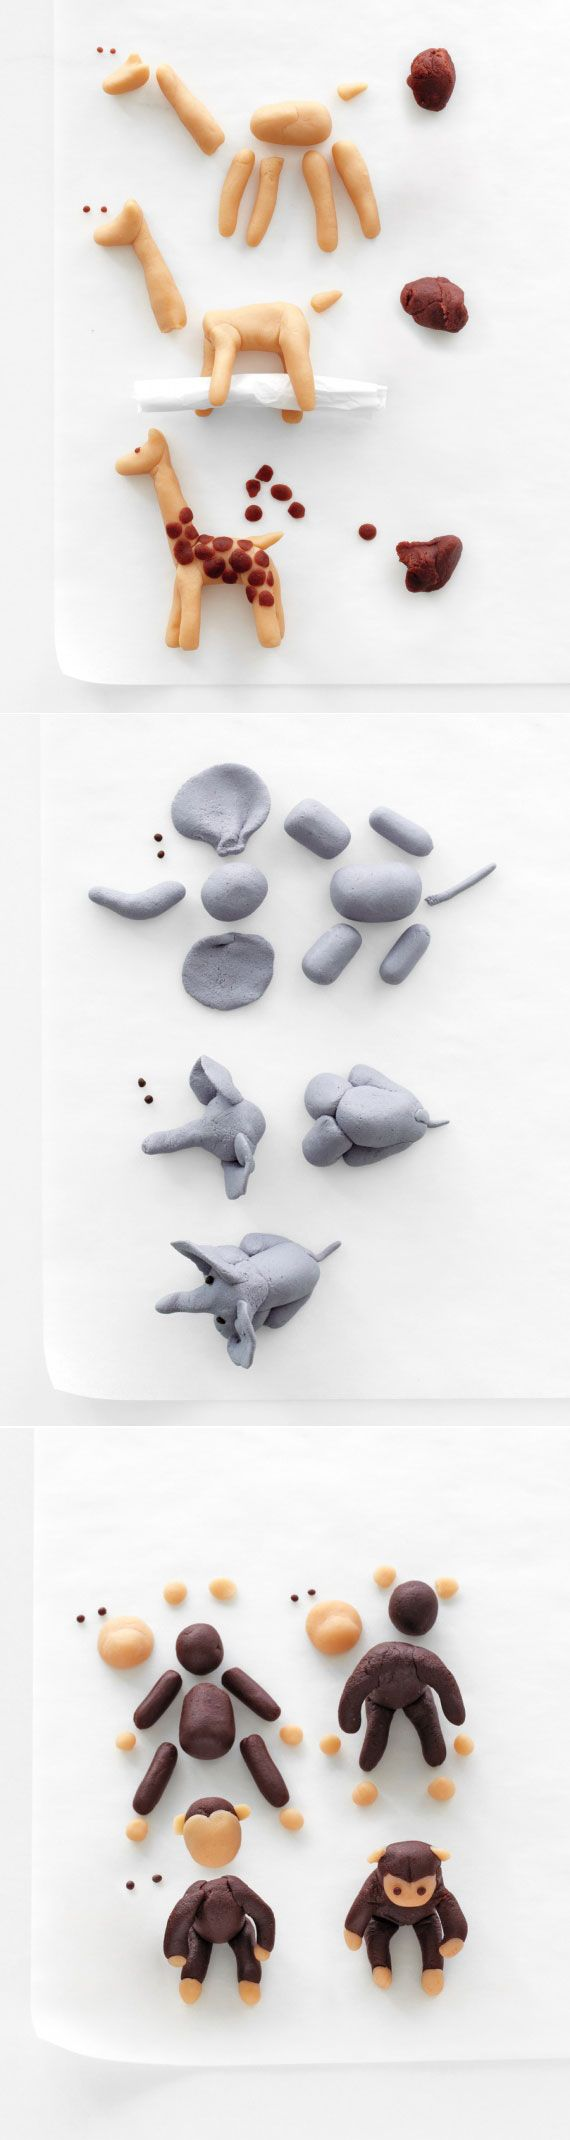 #DIY Marzipan Menagerie Cake Toppers in Fun, Animal Shapes